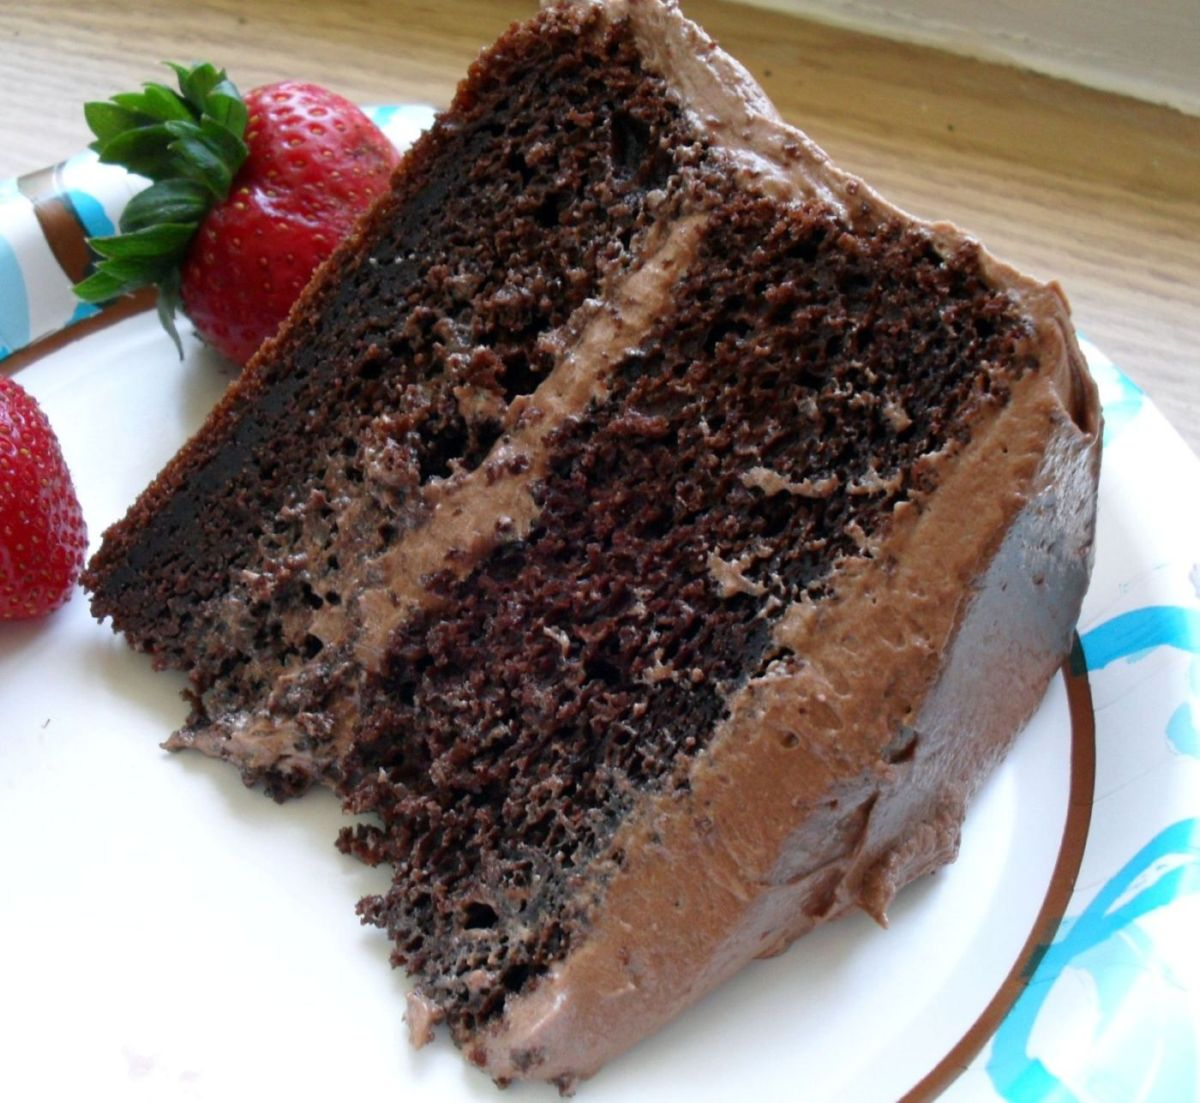 Images Of Chocolate Cake : CHOCOLATE CAKE YUM! - Chocolate Photo (33482002) - Fanpop